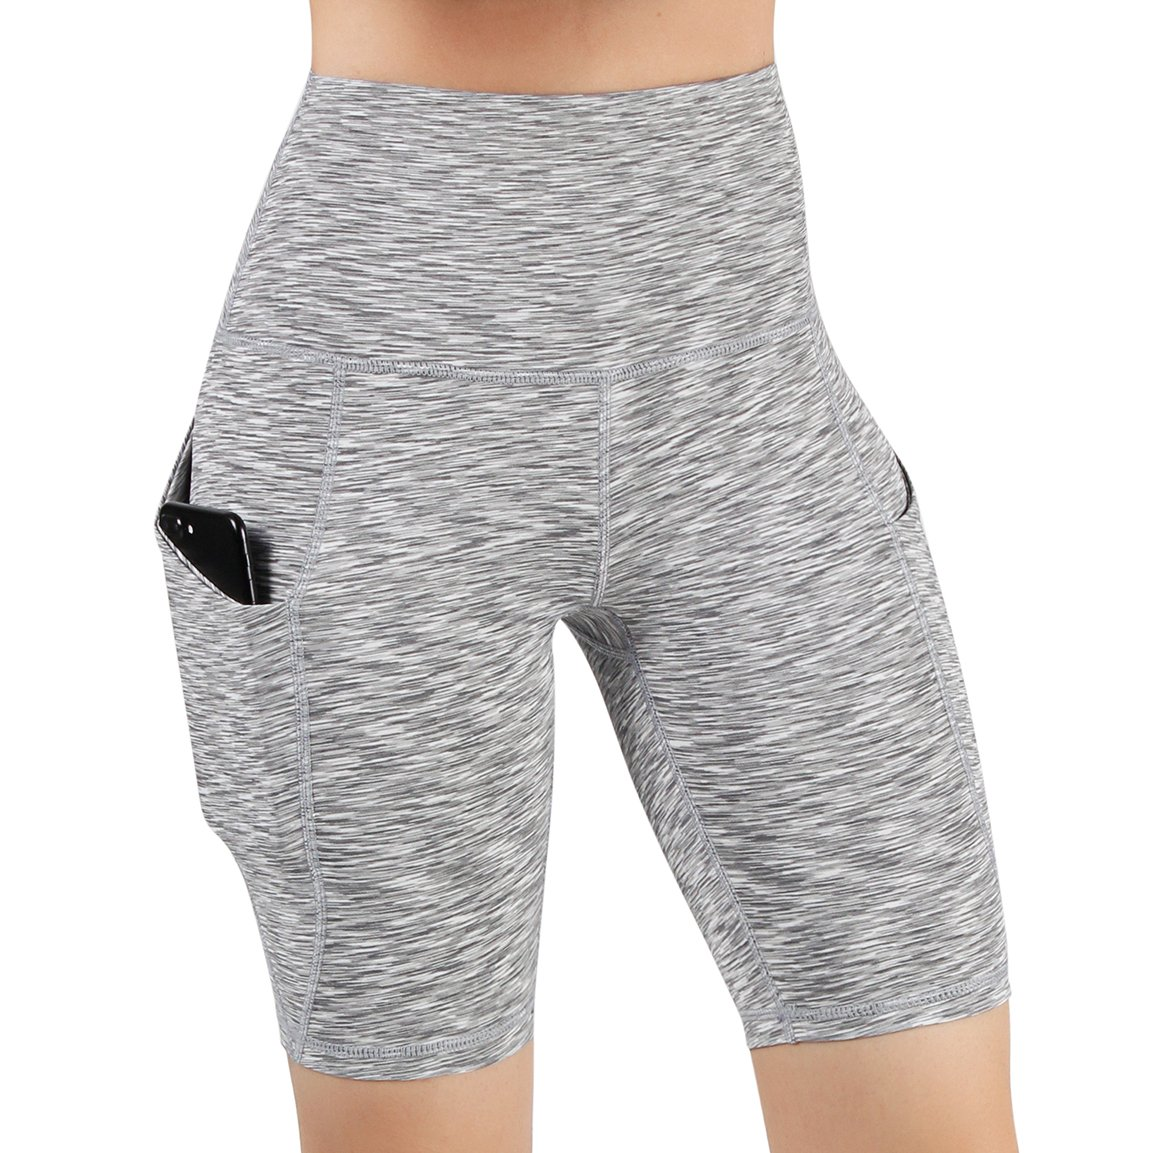 ODODOS High Waist Out Pocket Yoga Short Tummy Control Workout Running Athletic Non See-Through Yoga Shorts,SpaceDyeGray,Large by ODODOS